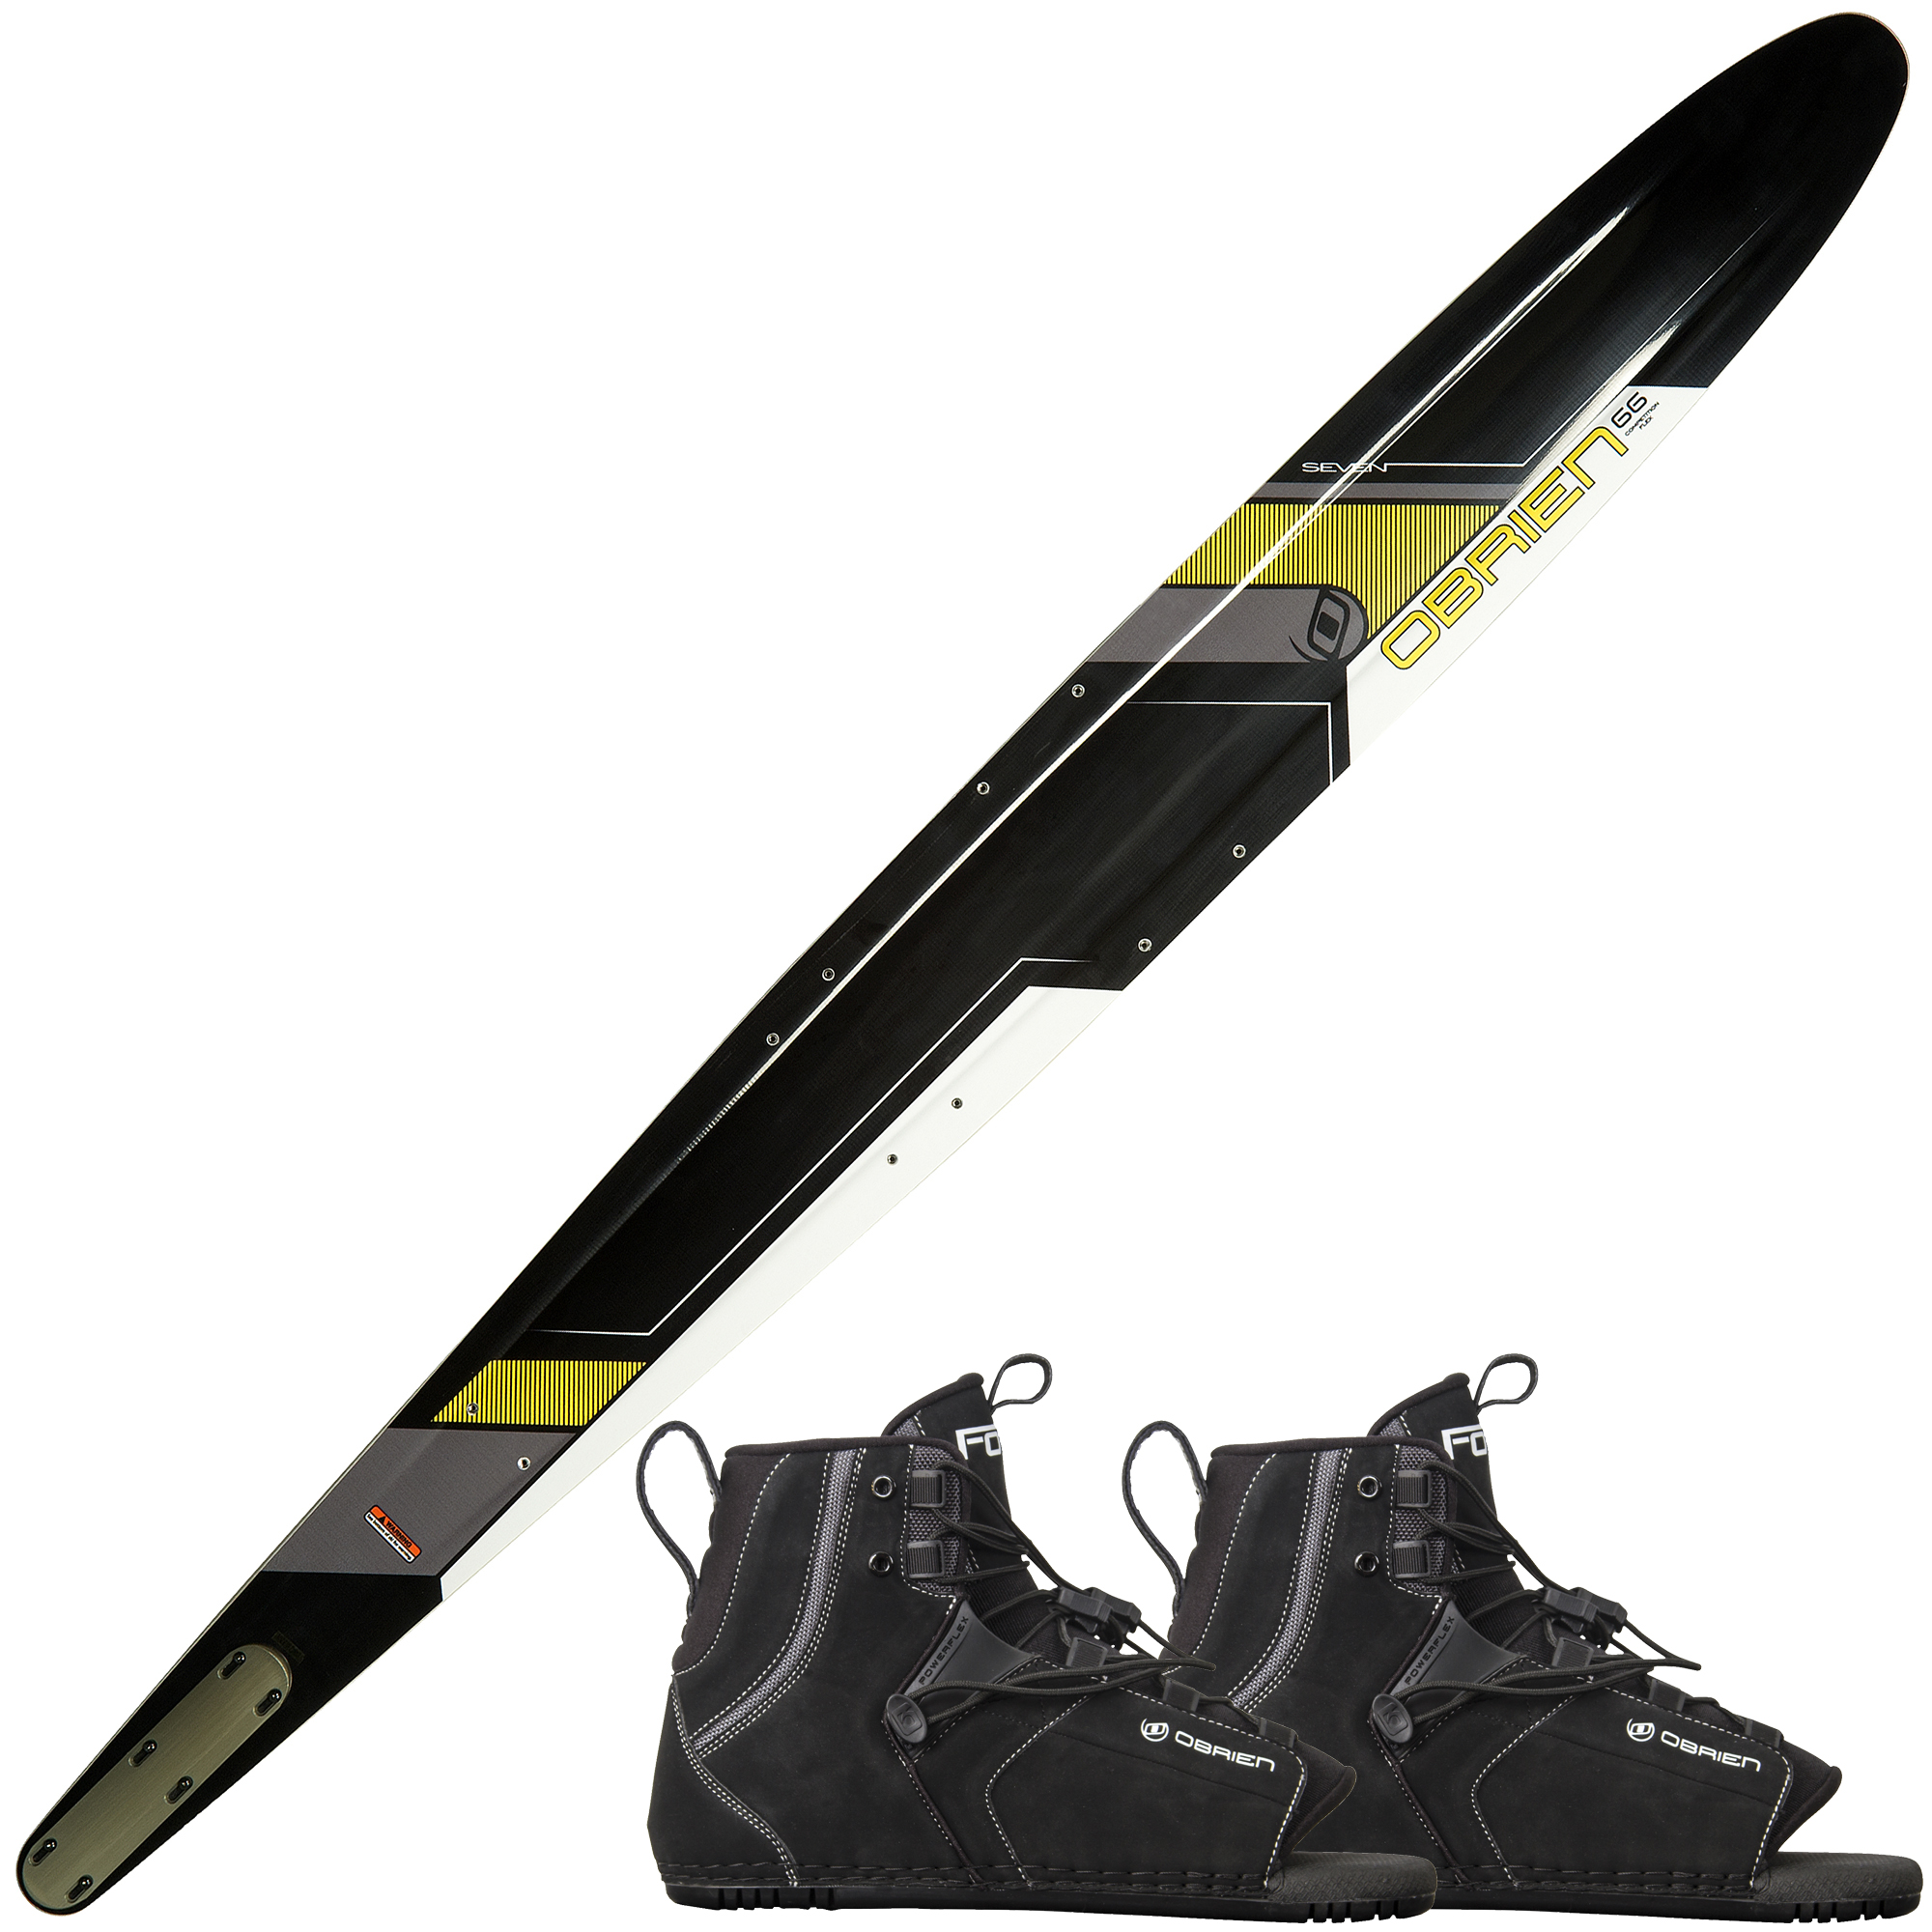 O'Brien Seven Slalom Waterski With Double Force Bindings